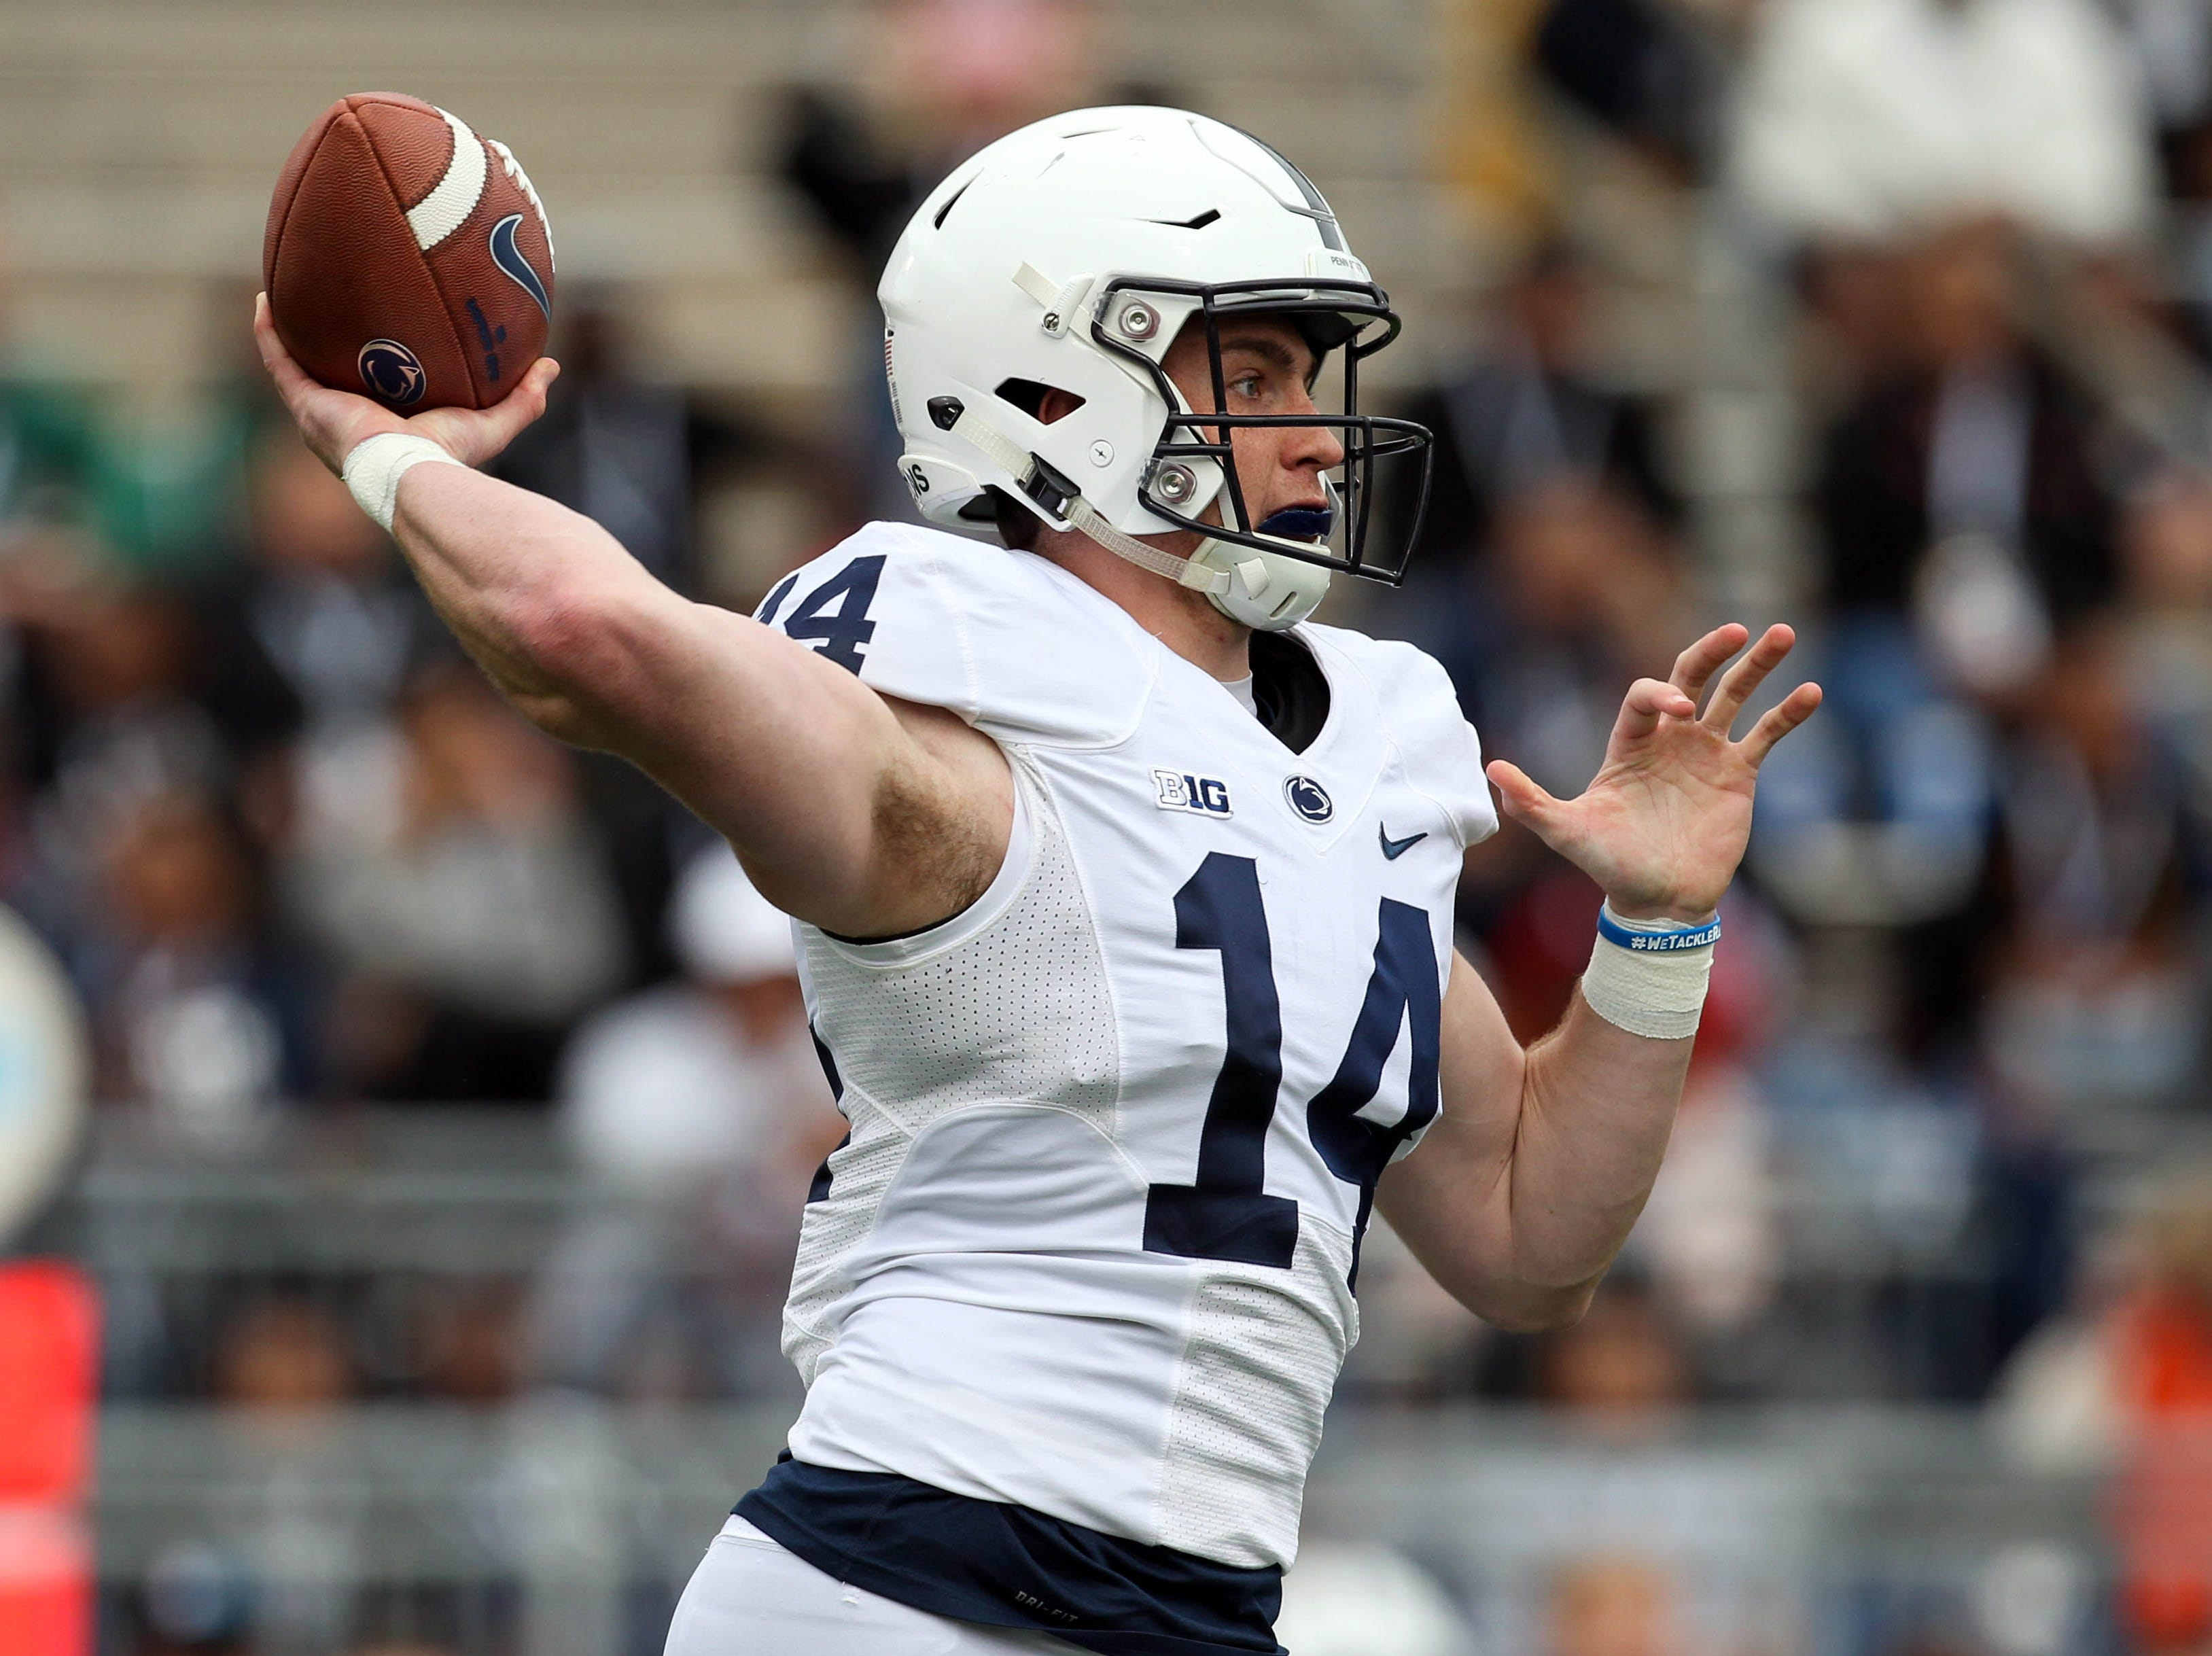 Apr 13, 2019; University Park, PA, USA; Penn State Nittany Lions quarterback Sean Clifford (14) throws a pass during the first quarter of the Blue White spring game at Beaver Stadium. The Blue team defeated the White team 24-7. Mandatory Credit: Matthew O'Haren-USA TODAY Sports